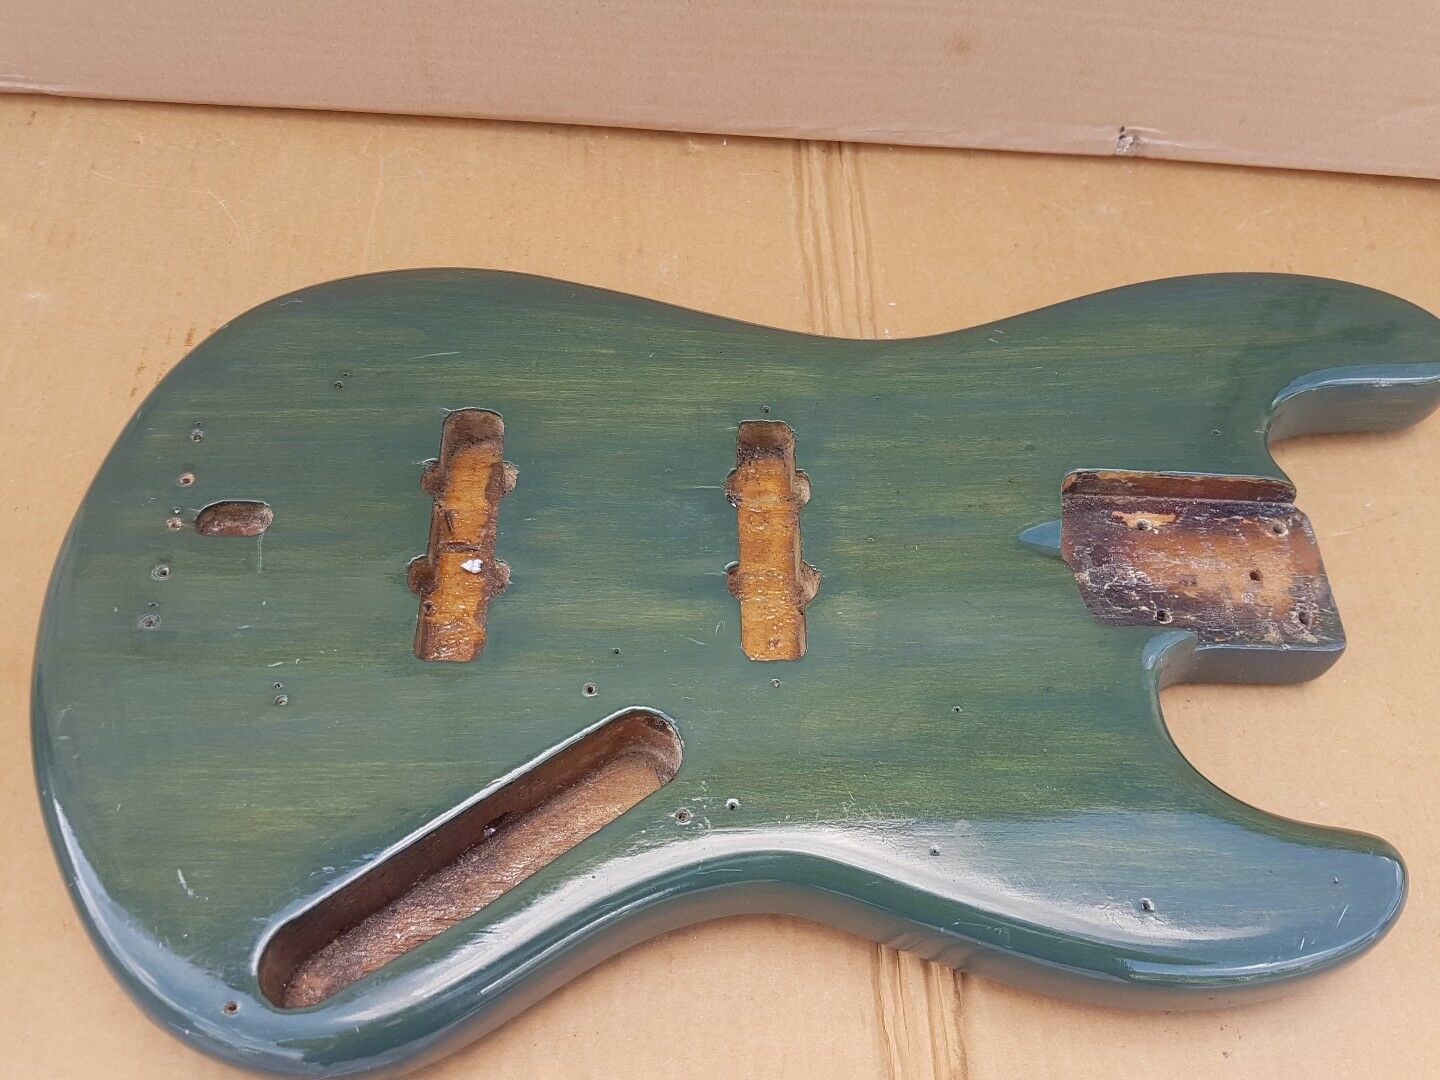 1973 FENDER JAZZ BASS BODY - made in USA